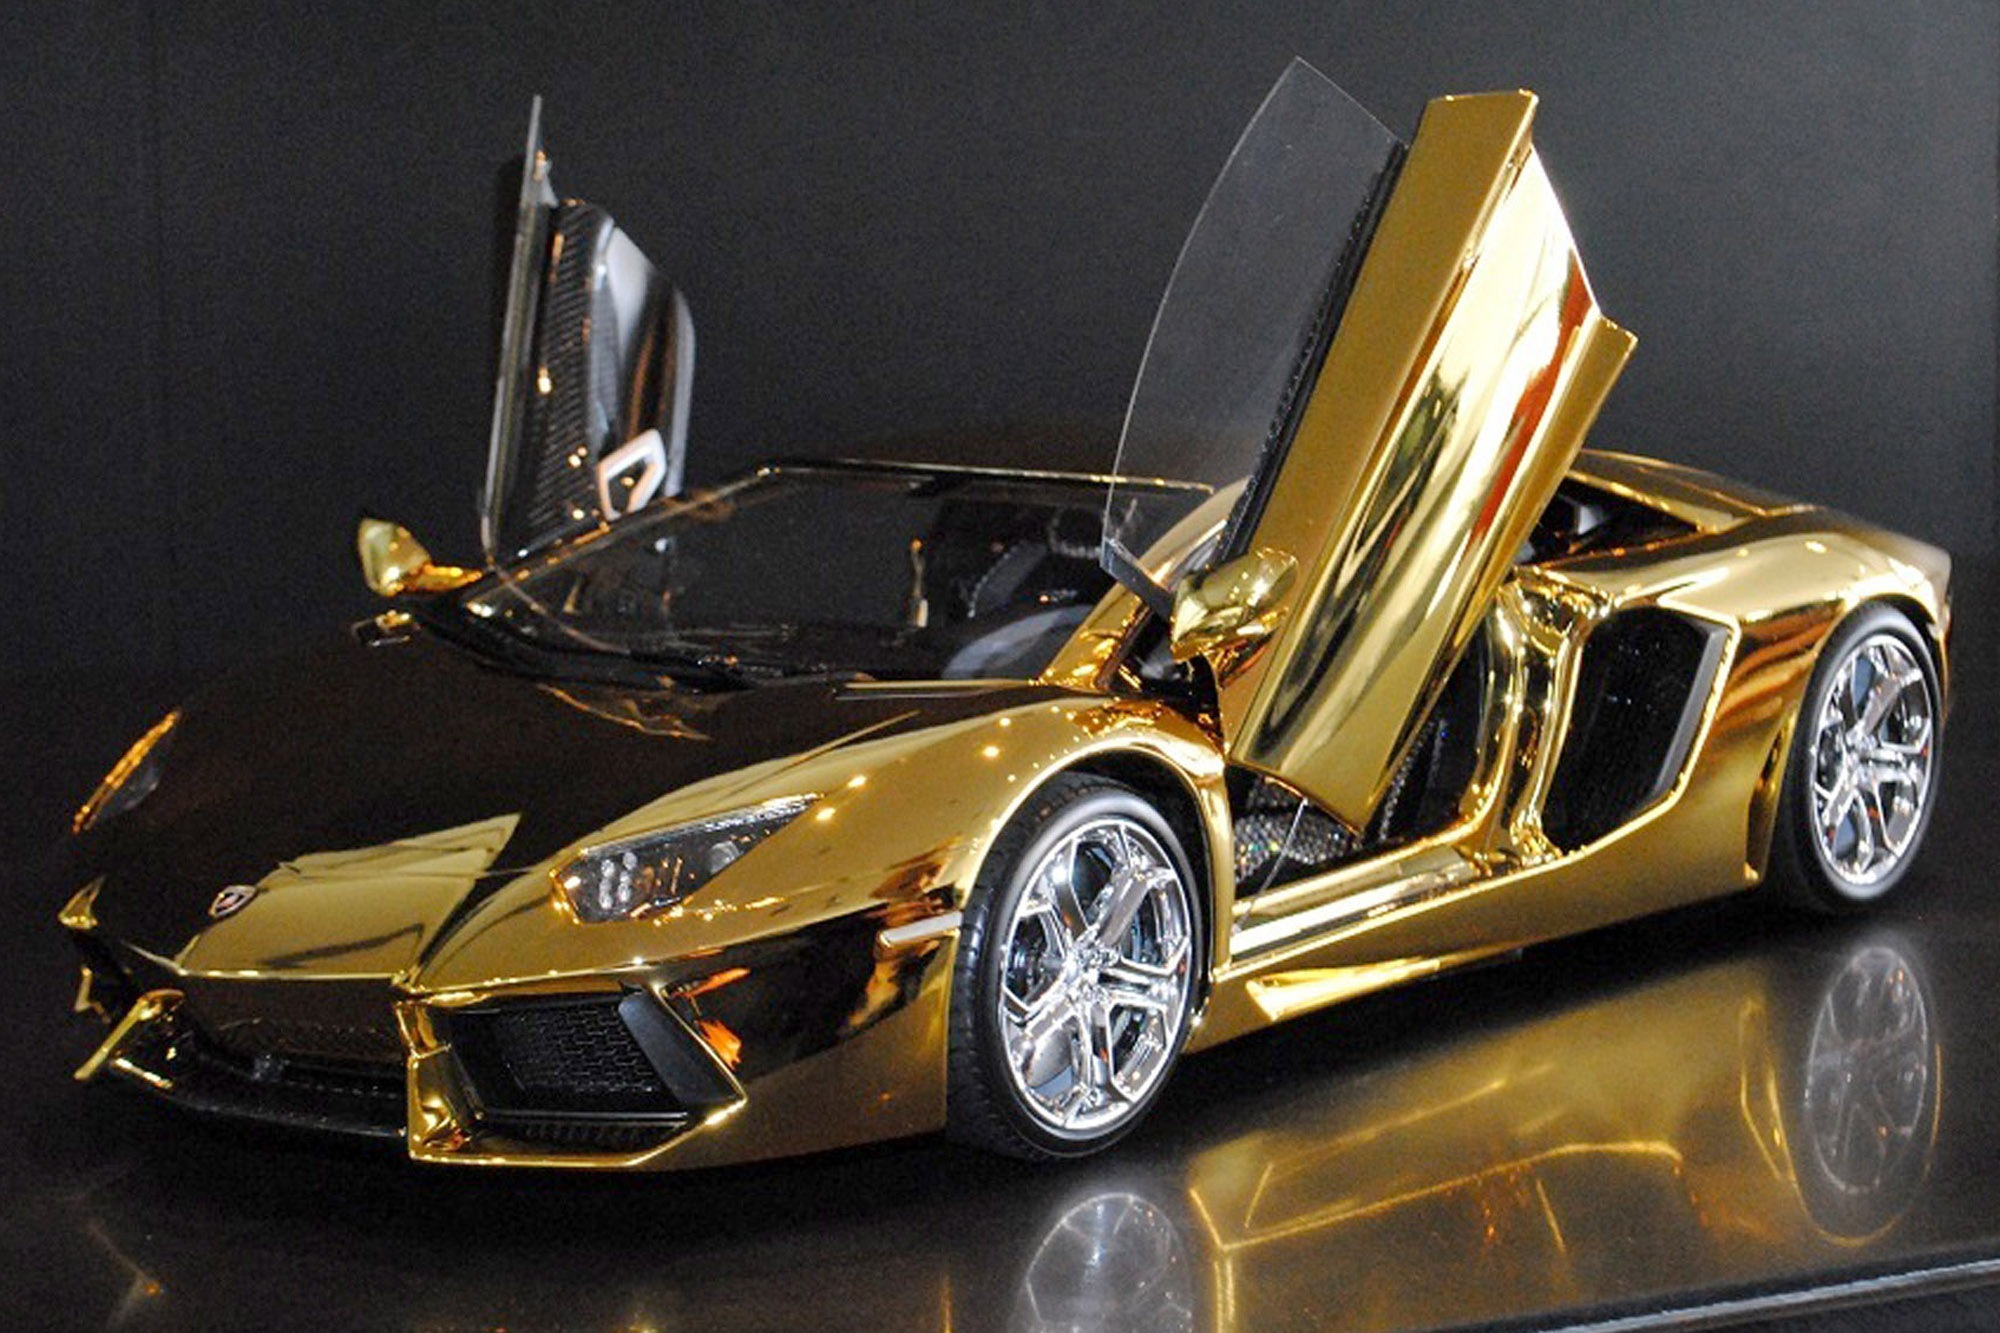 Golden Cars: LIke Gold? What About GOLDEN CARS? Enjoy These RICH BOY's